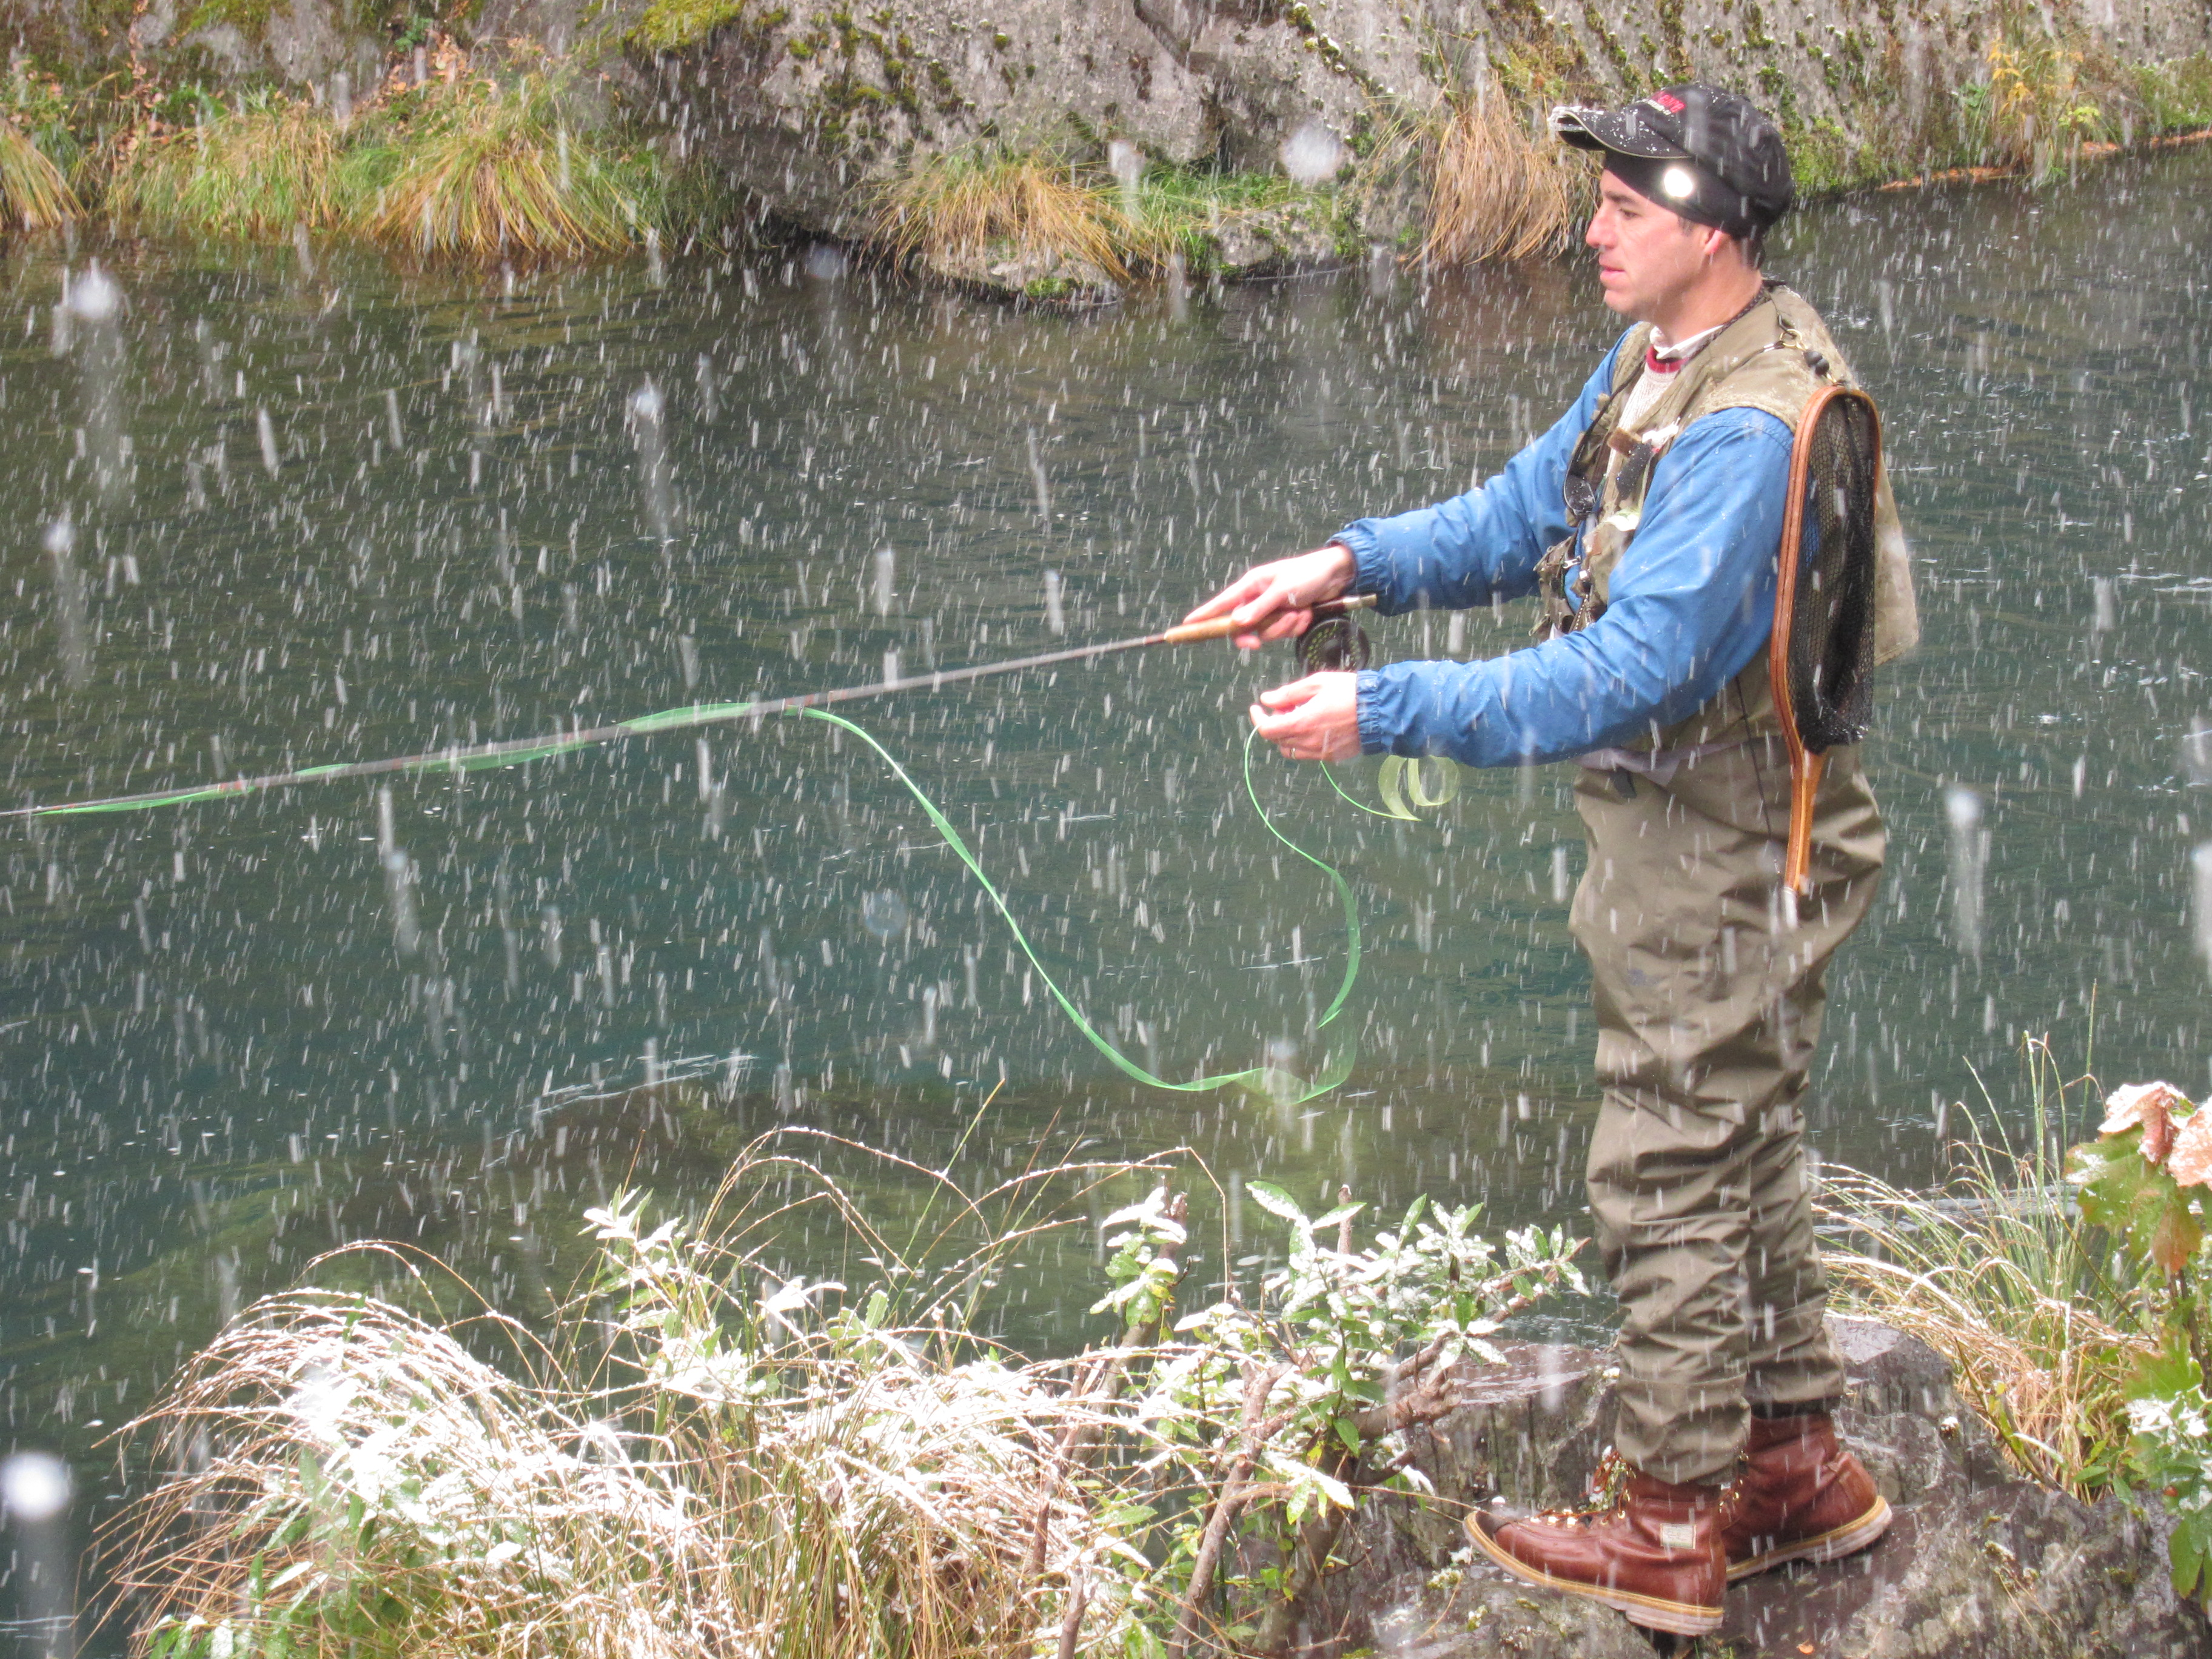 Peter Fishing in Snow